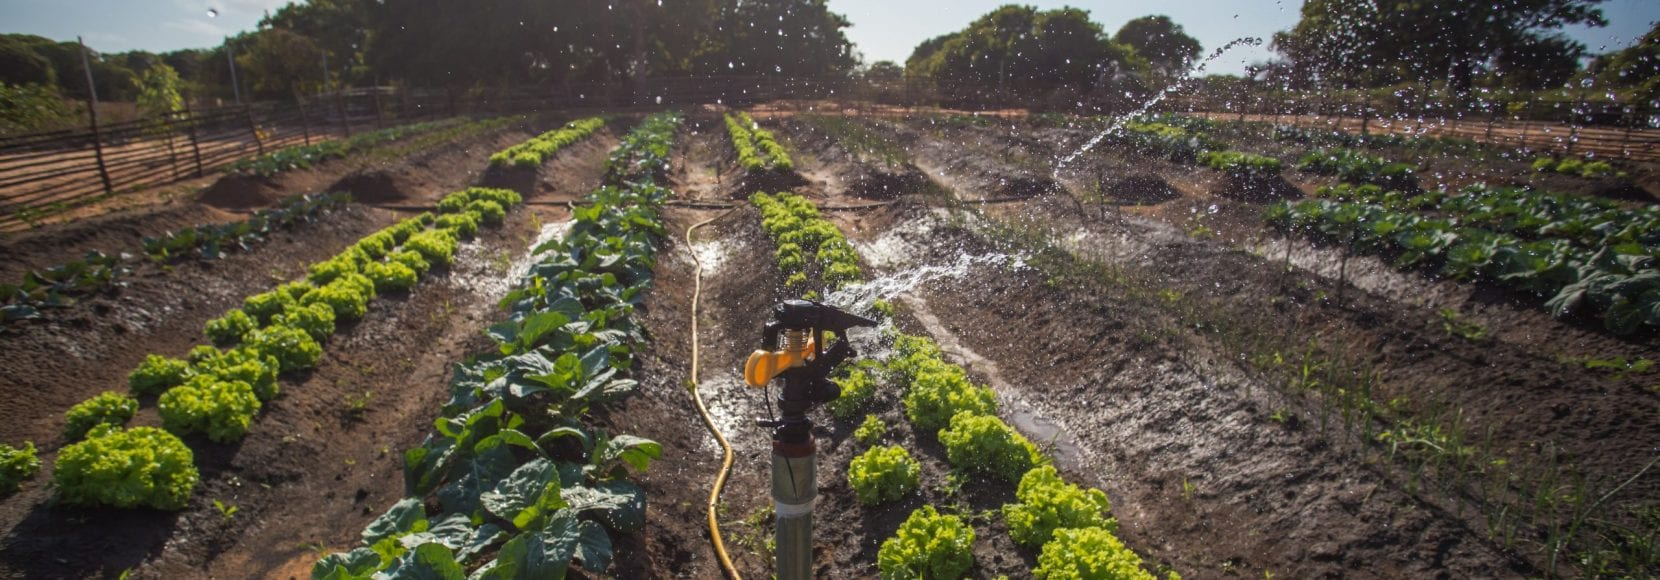 Vegetables are planted in neat rows in Mozambique